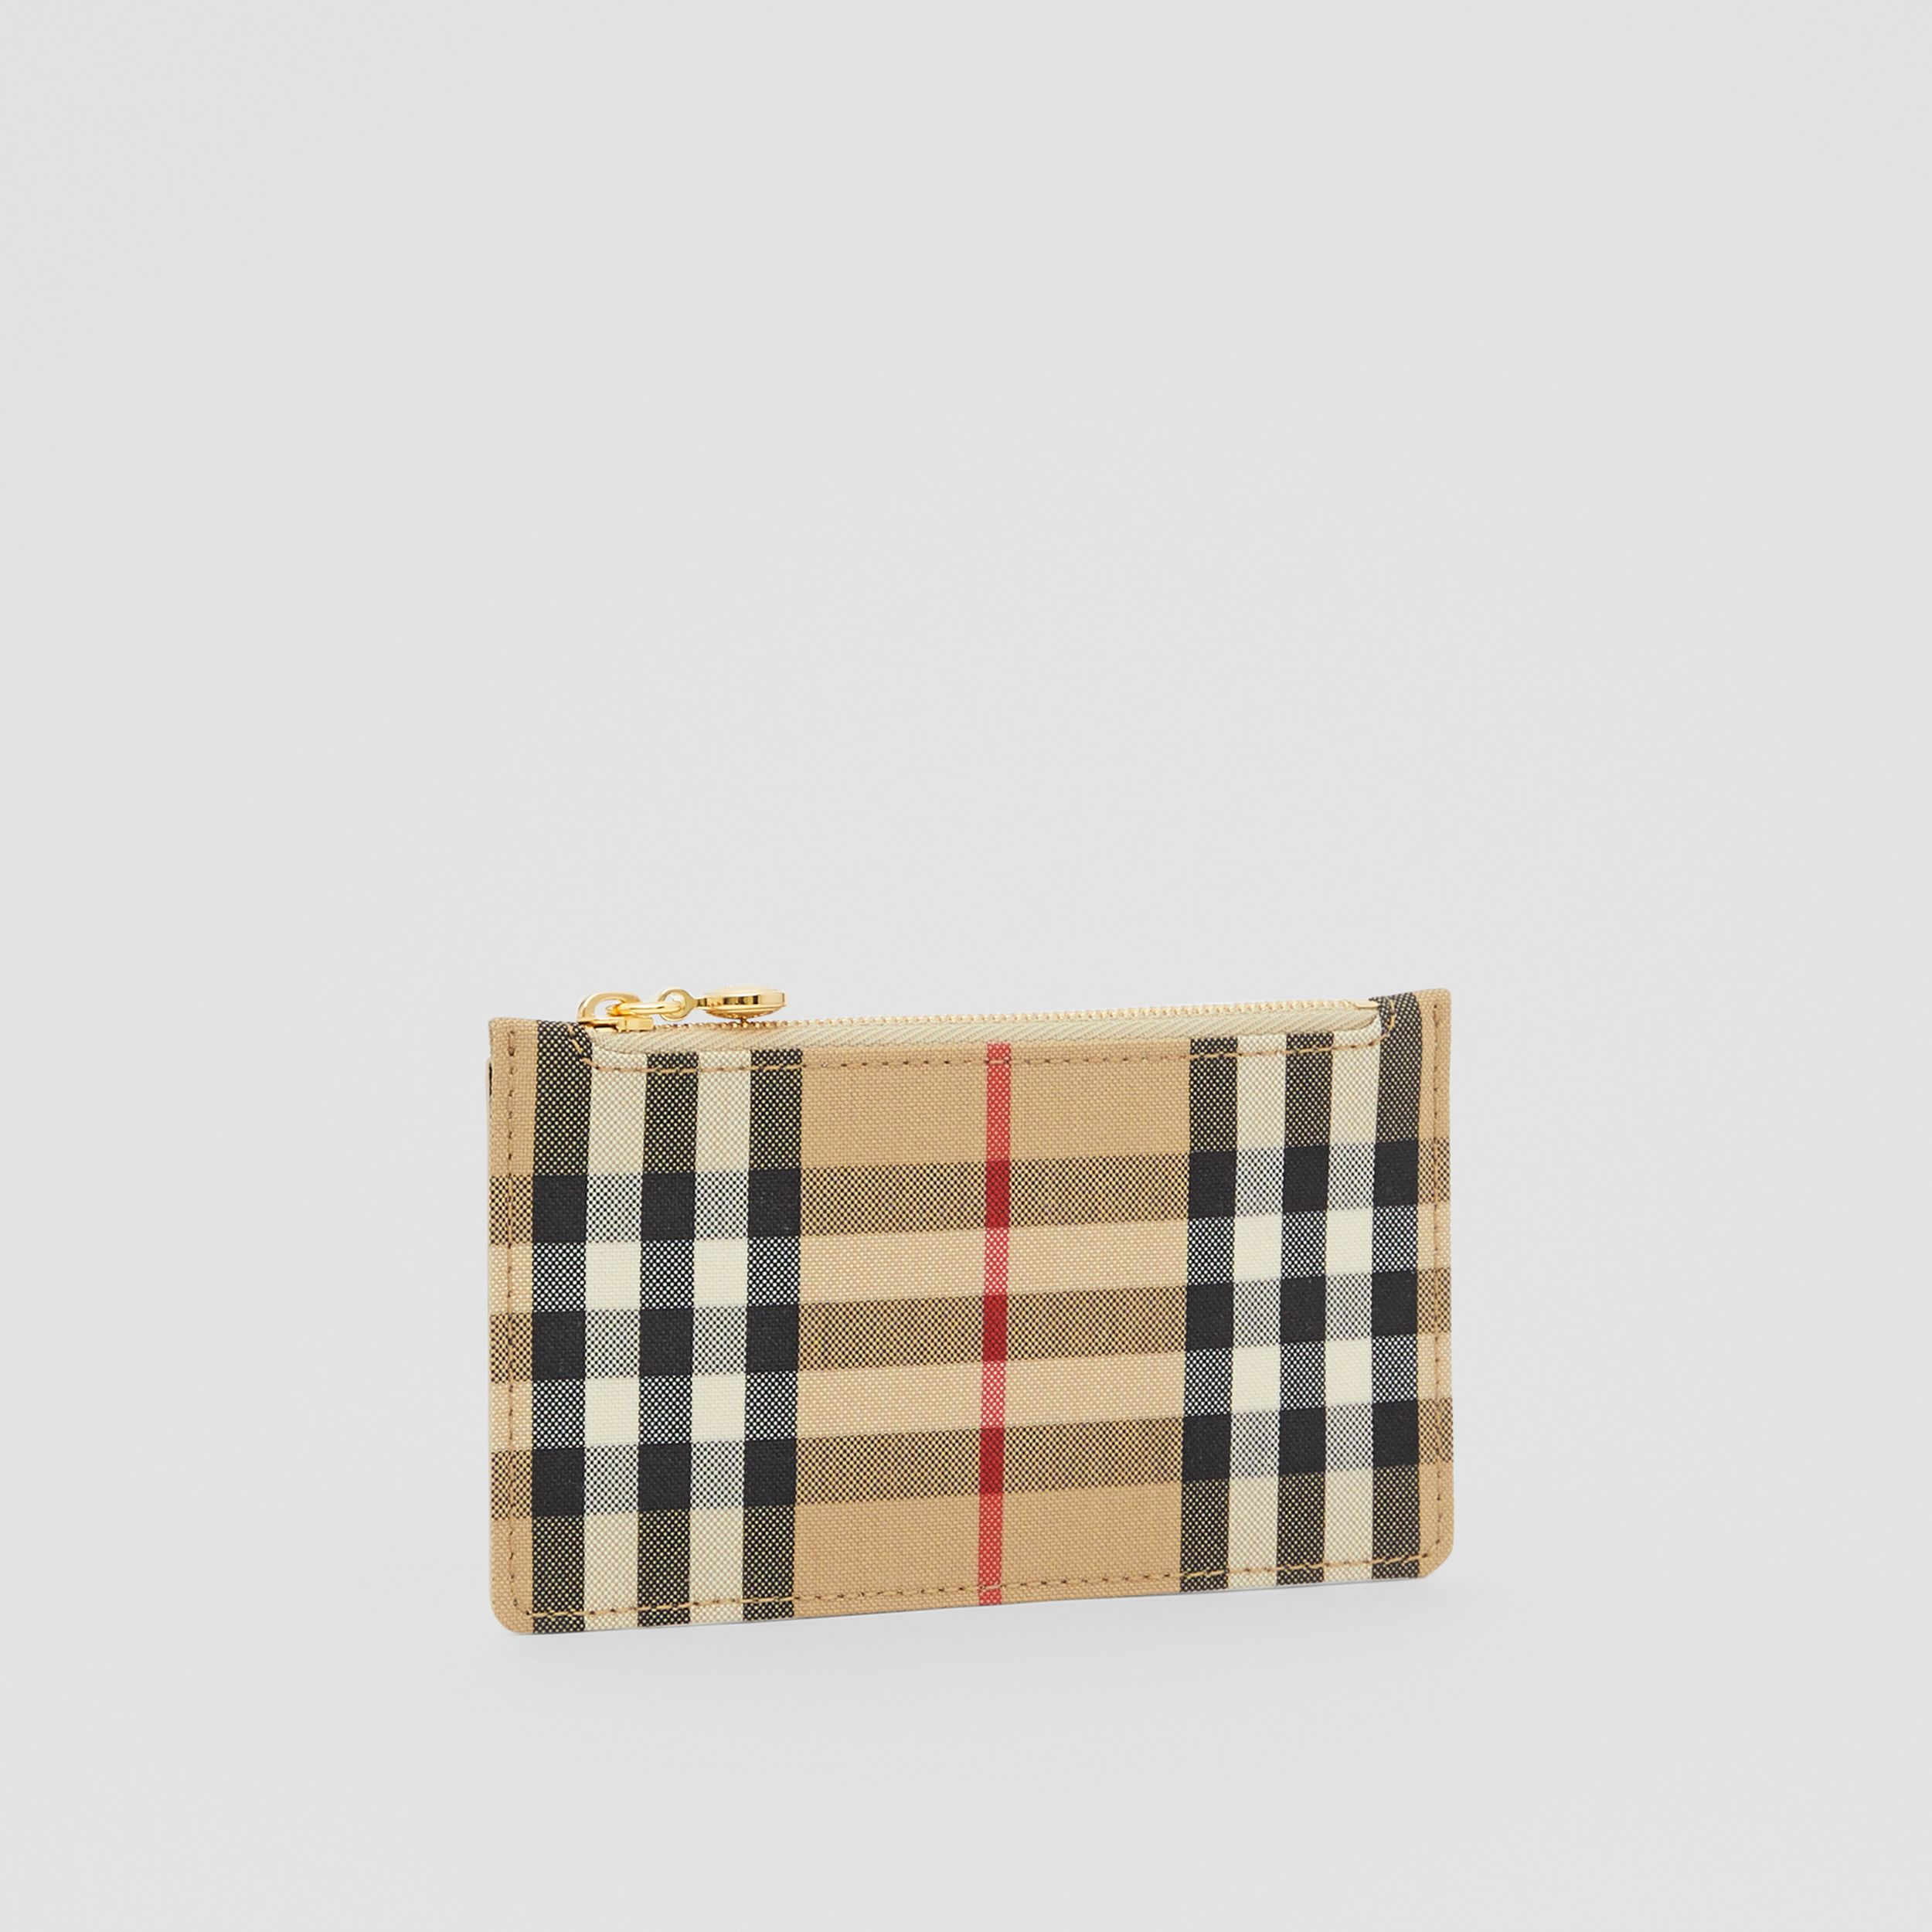 Vintage Check and Leather Zip Card Case in Light Beige - Women | Burberry Hong Kong S.A.R. - 4